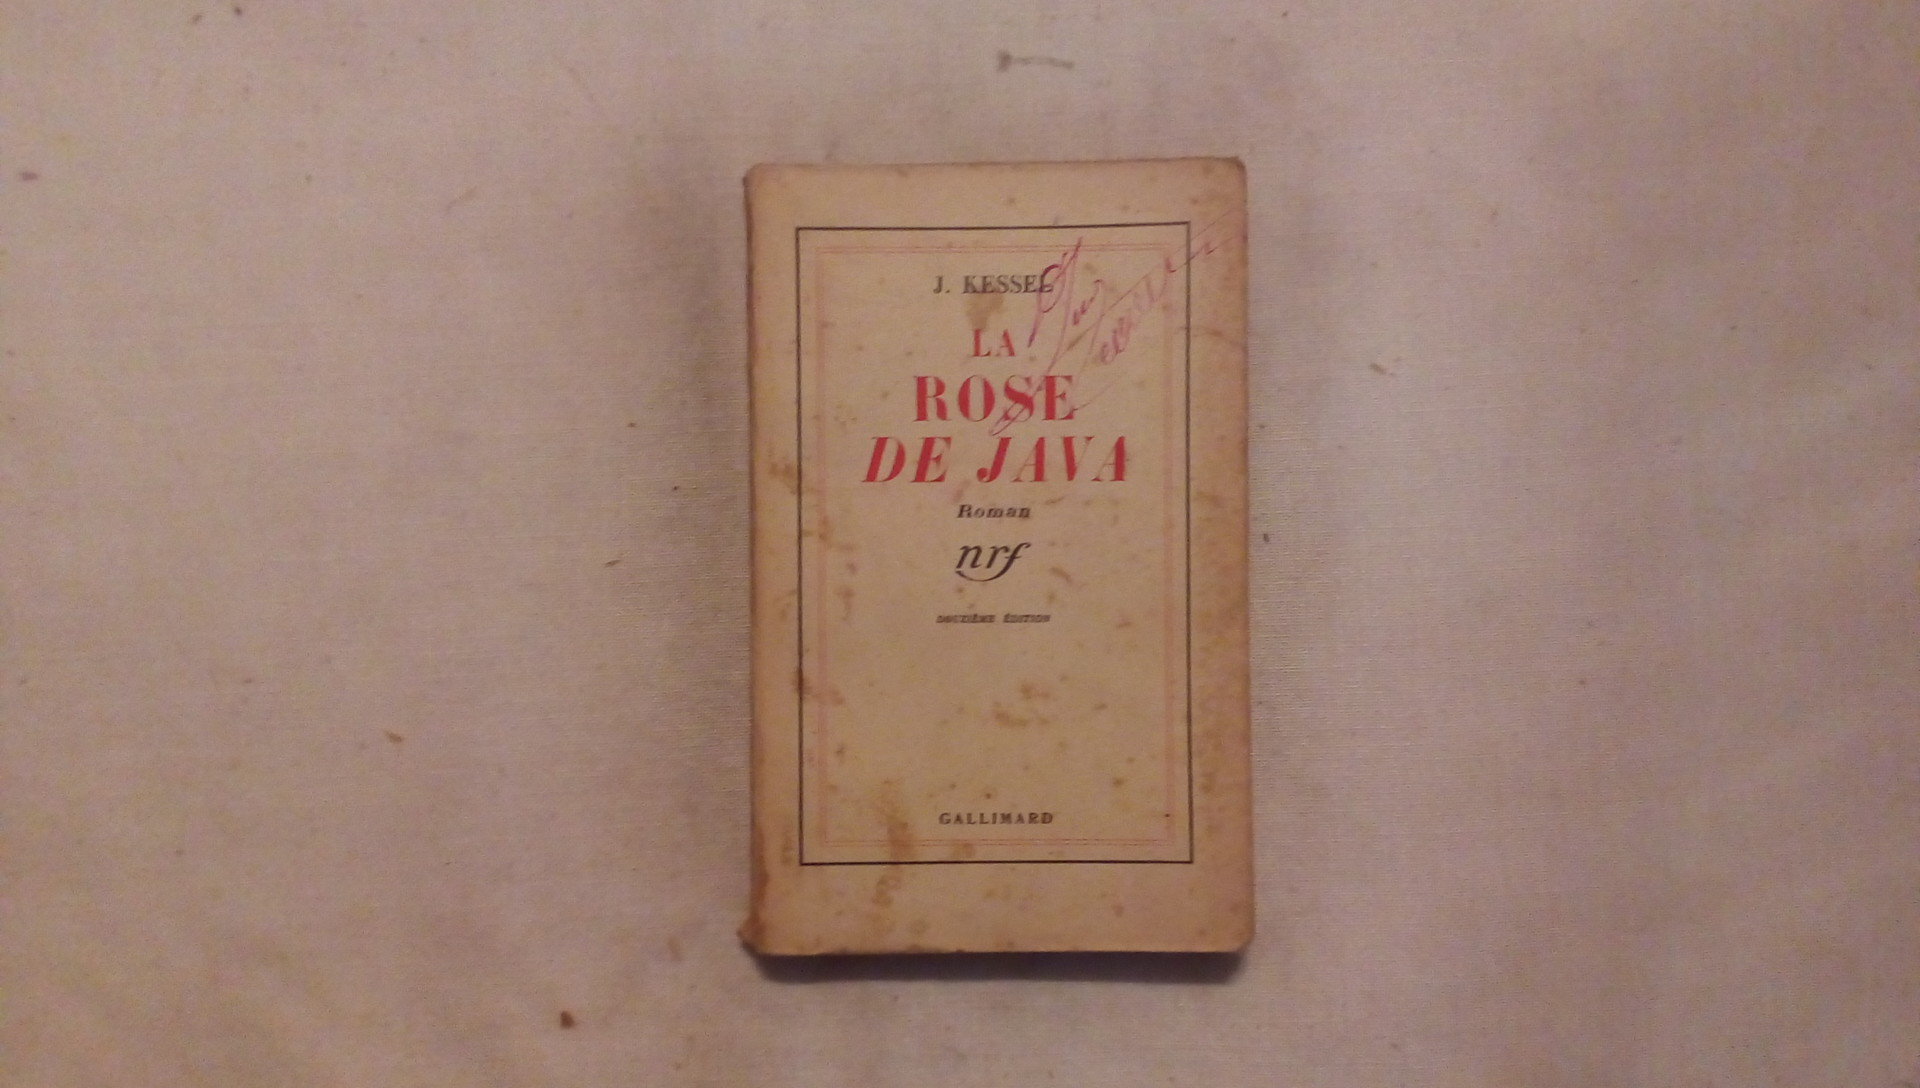 La rose de java - J. Kessel Gallimard